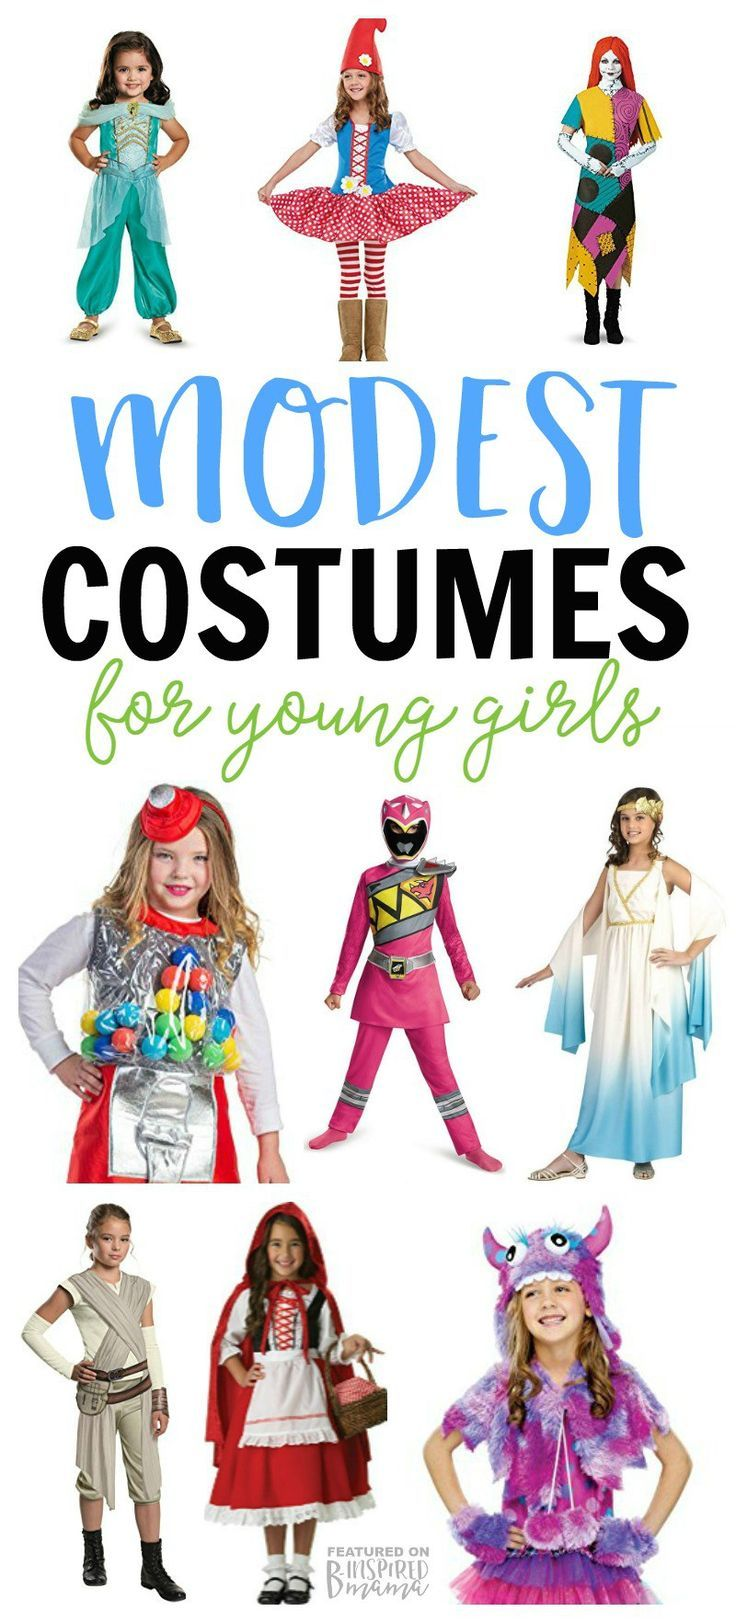 63 best little girls costume ideas images on pinterest costume ideas girl costumes and halloween costumes for girls - Little Girls Halloween Costume Ideas